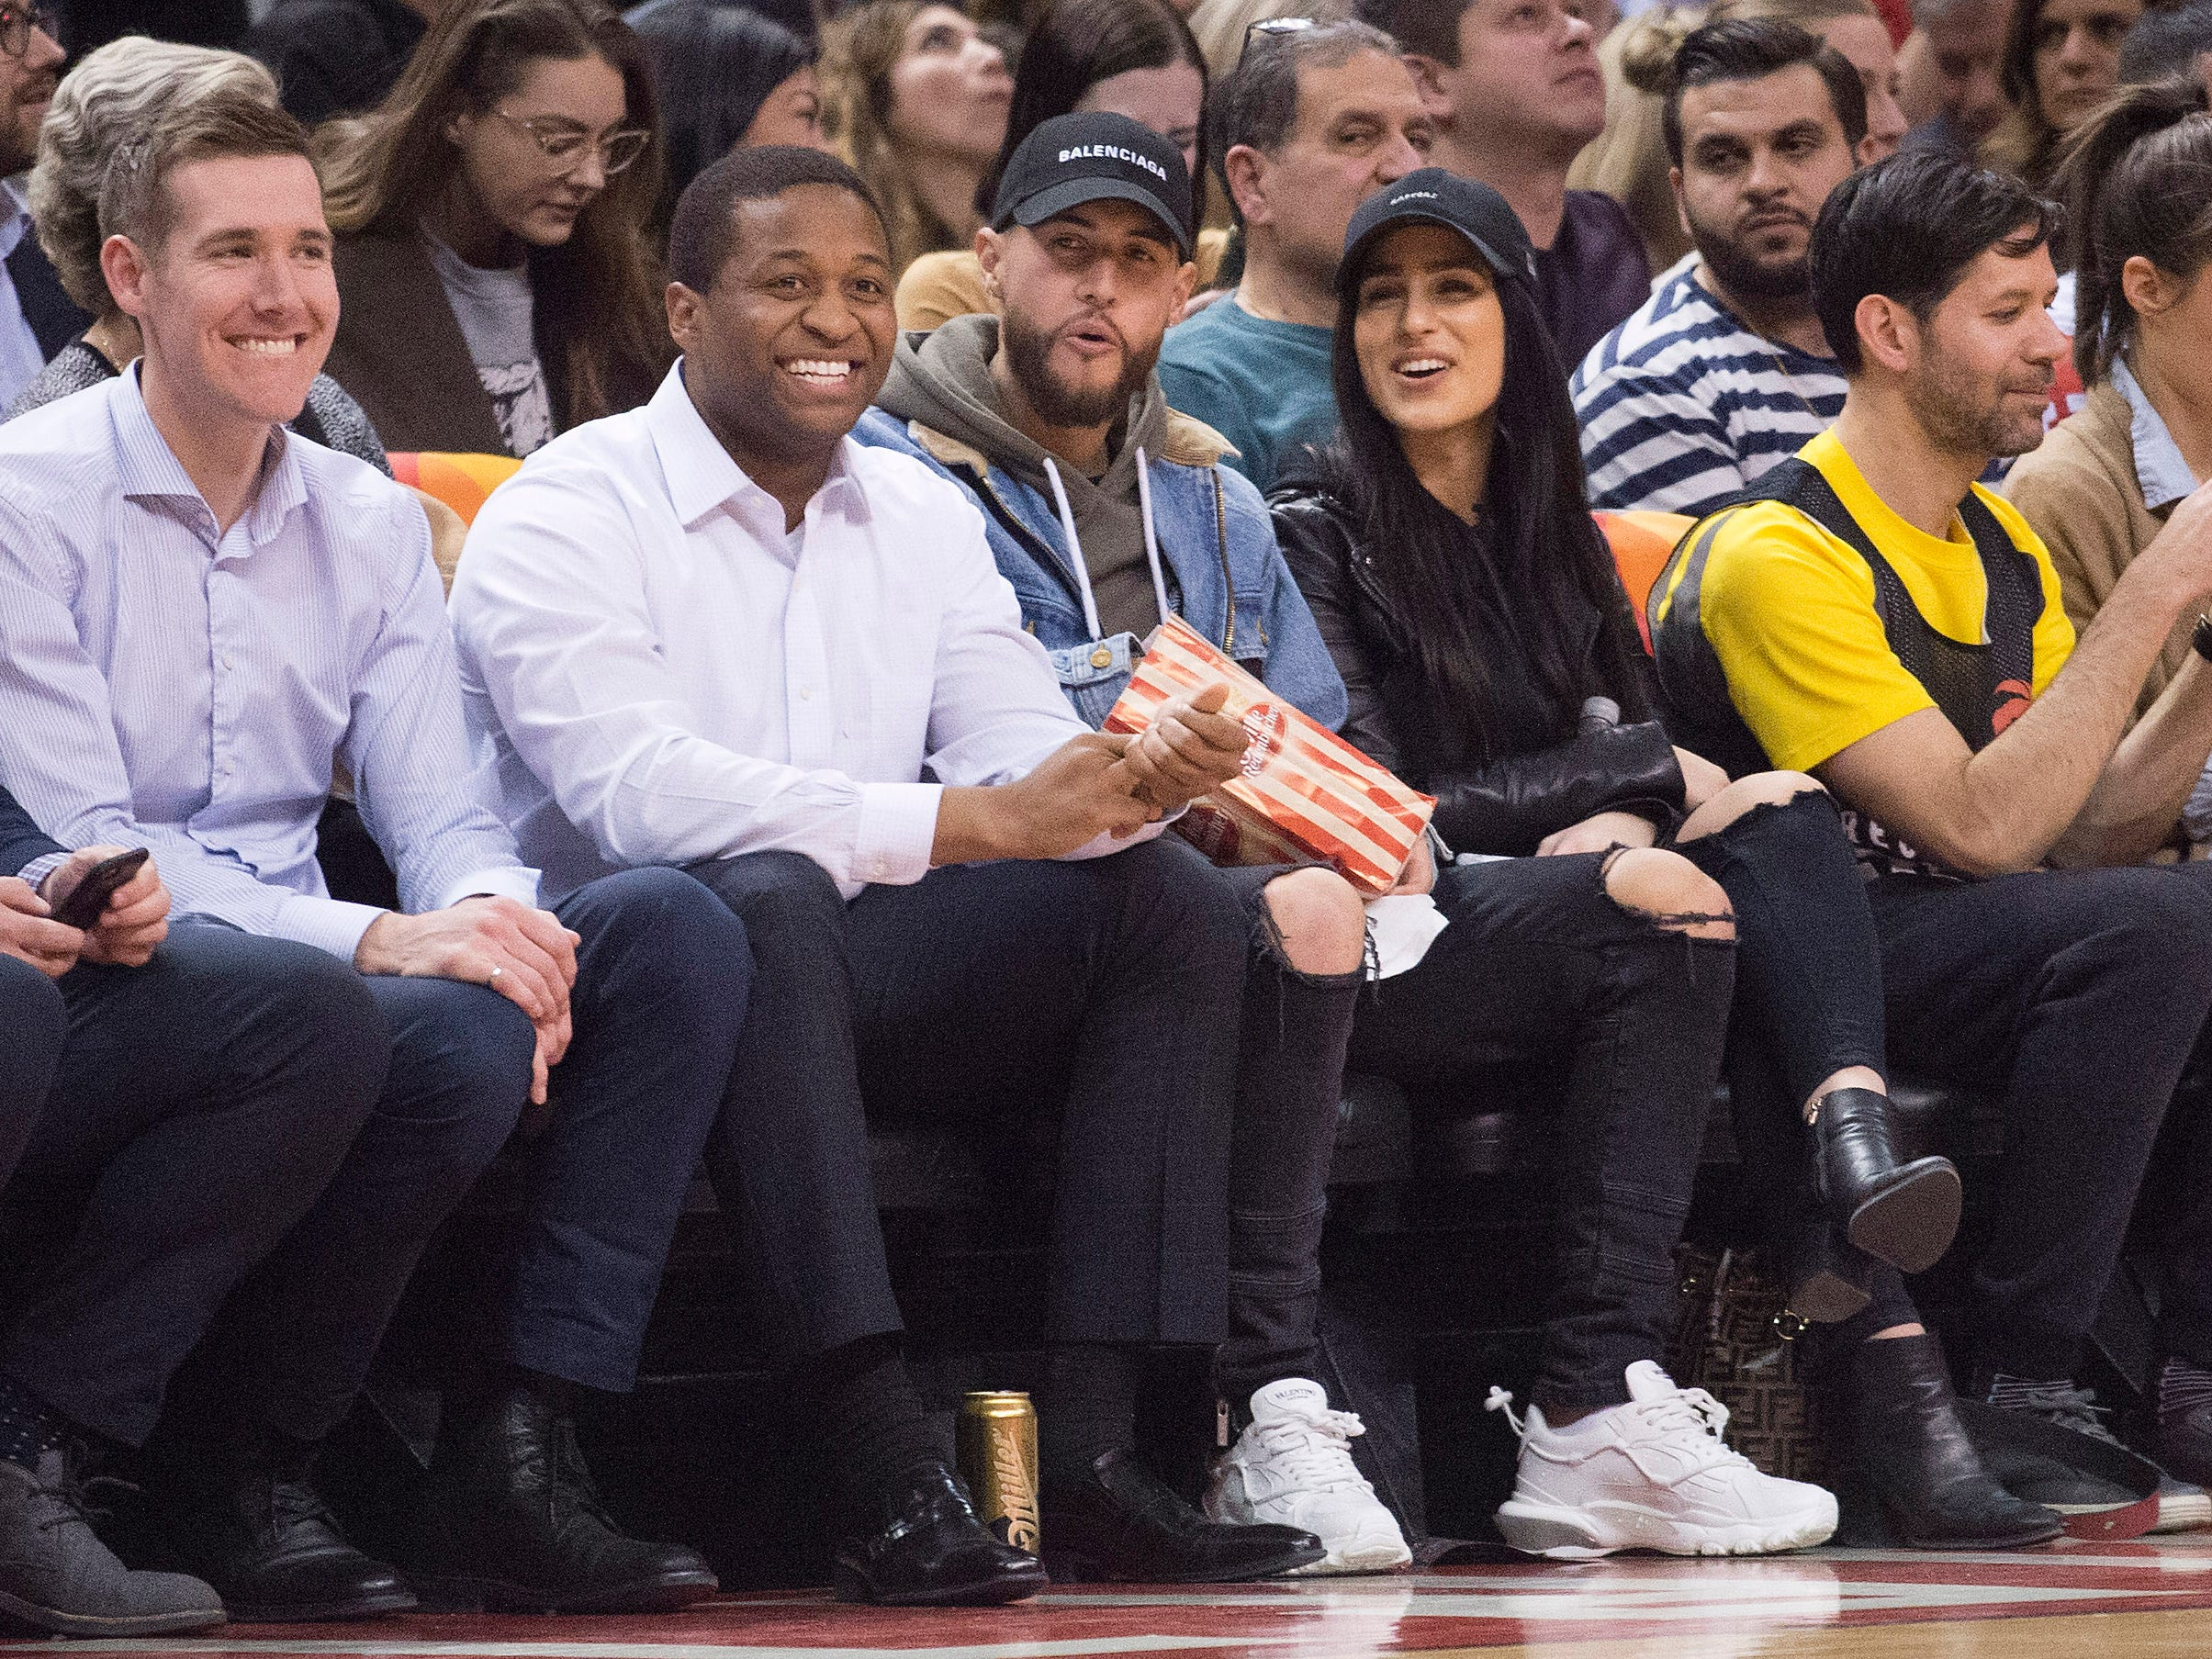 March 26: Toronto FC player Jonathan Osorio (middle) watches a game during the fourth quarter between the Chicago Bulls and the Toronto Raptors at Scotiabank Arena.